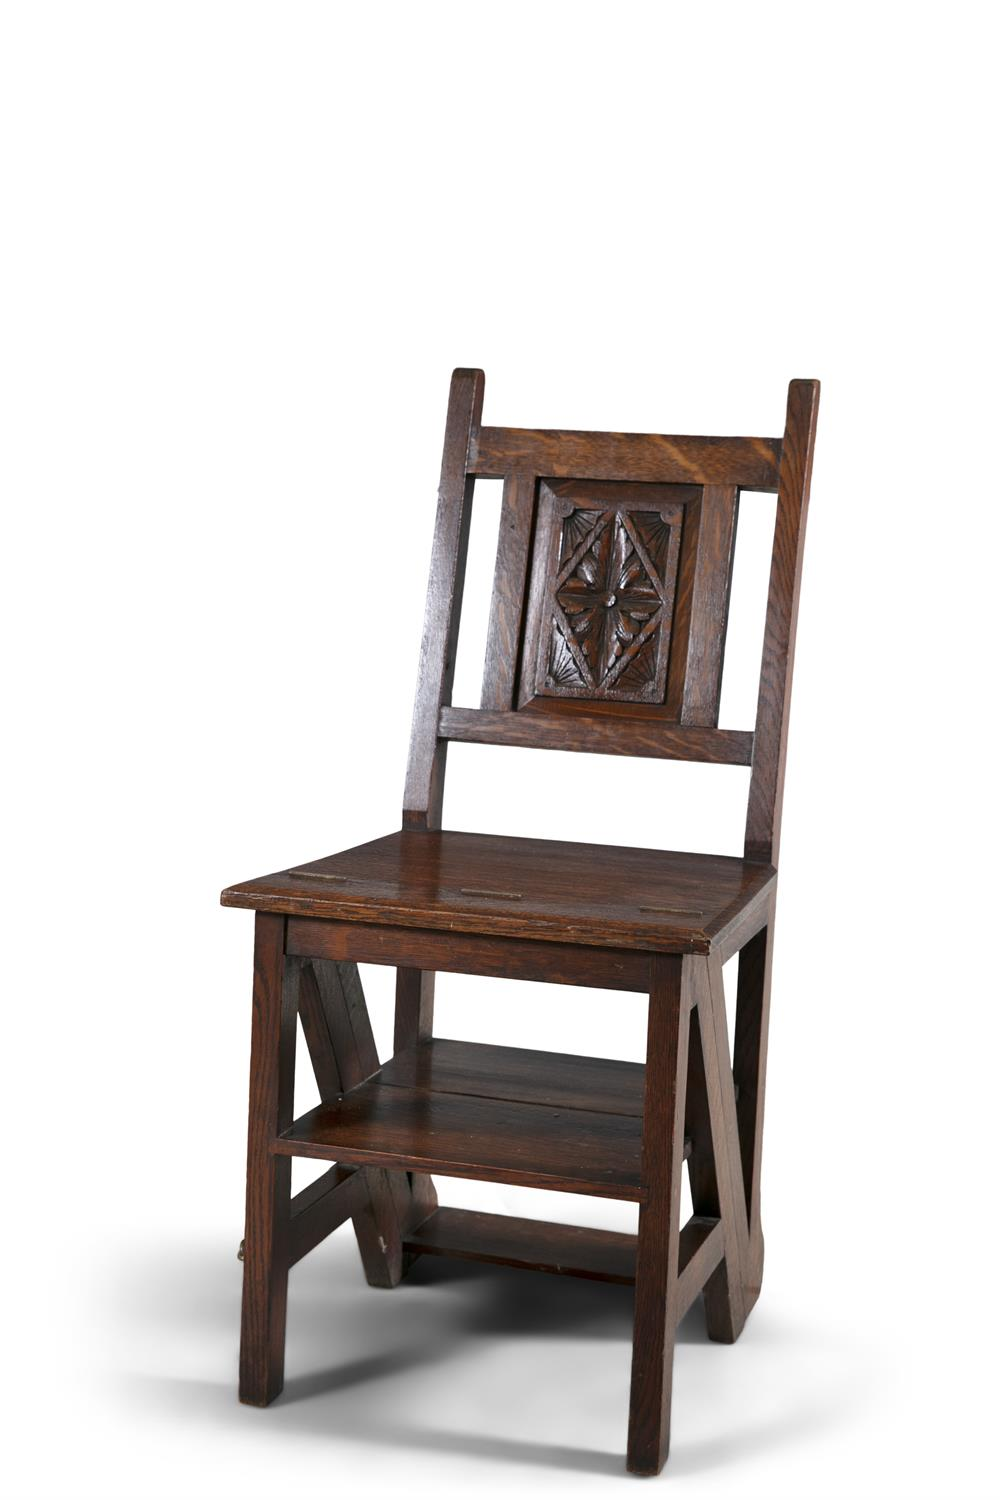 A VICTORIAN MAHOGANY FRAMED METAMORPHIC LIBRARY STEPS/SIDE CHAIR, with H-framed back with carved